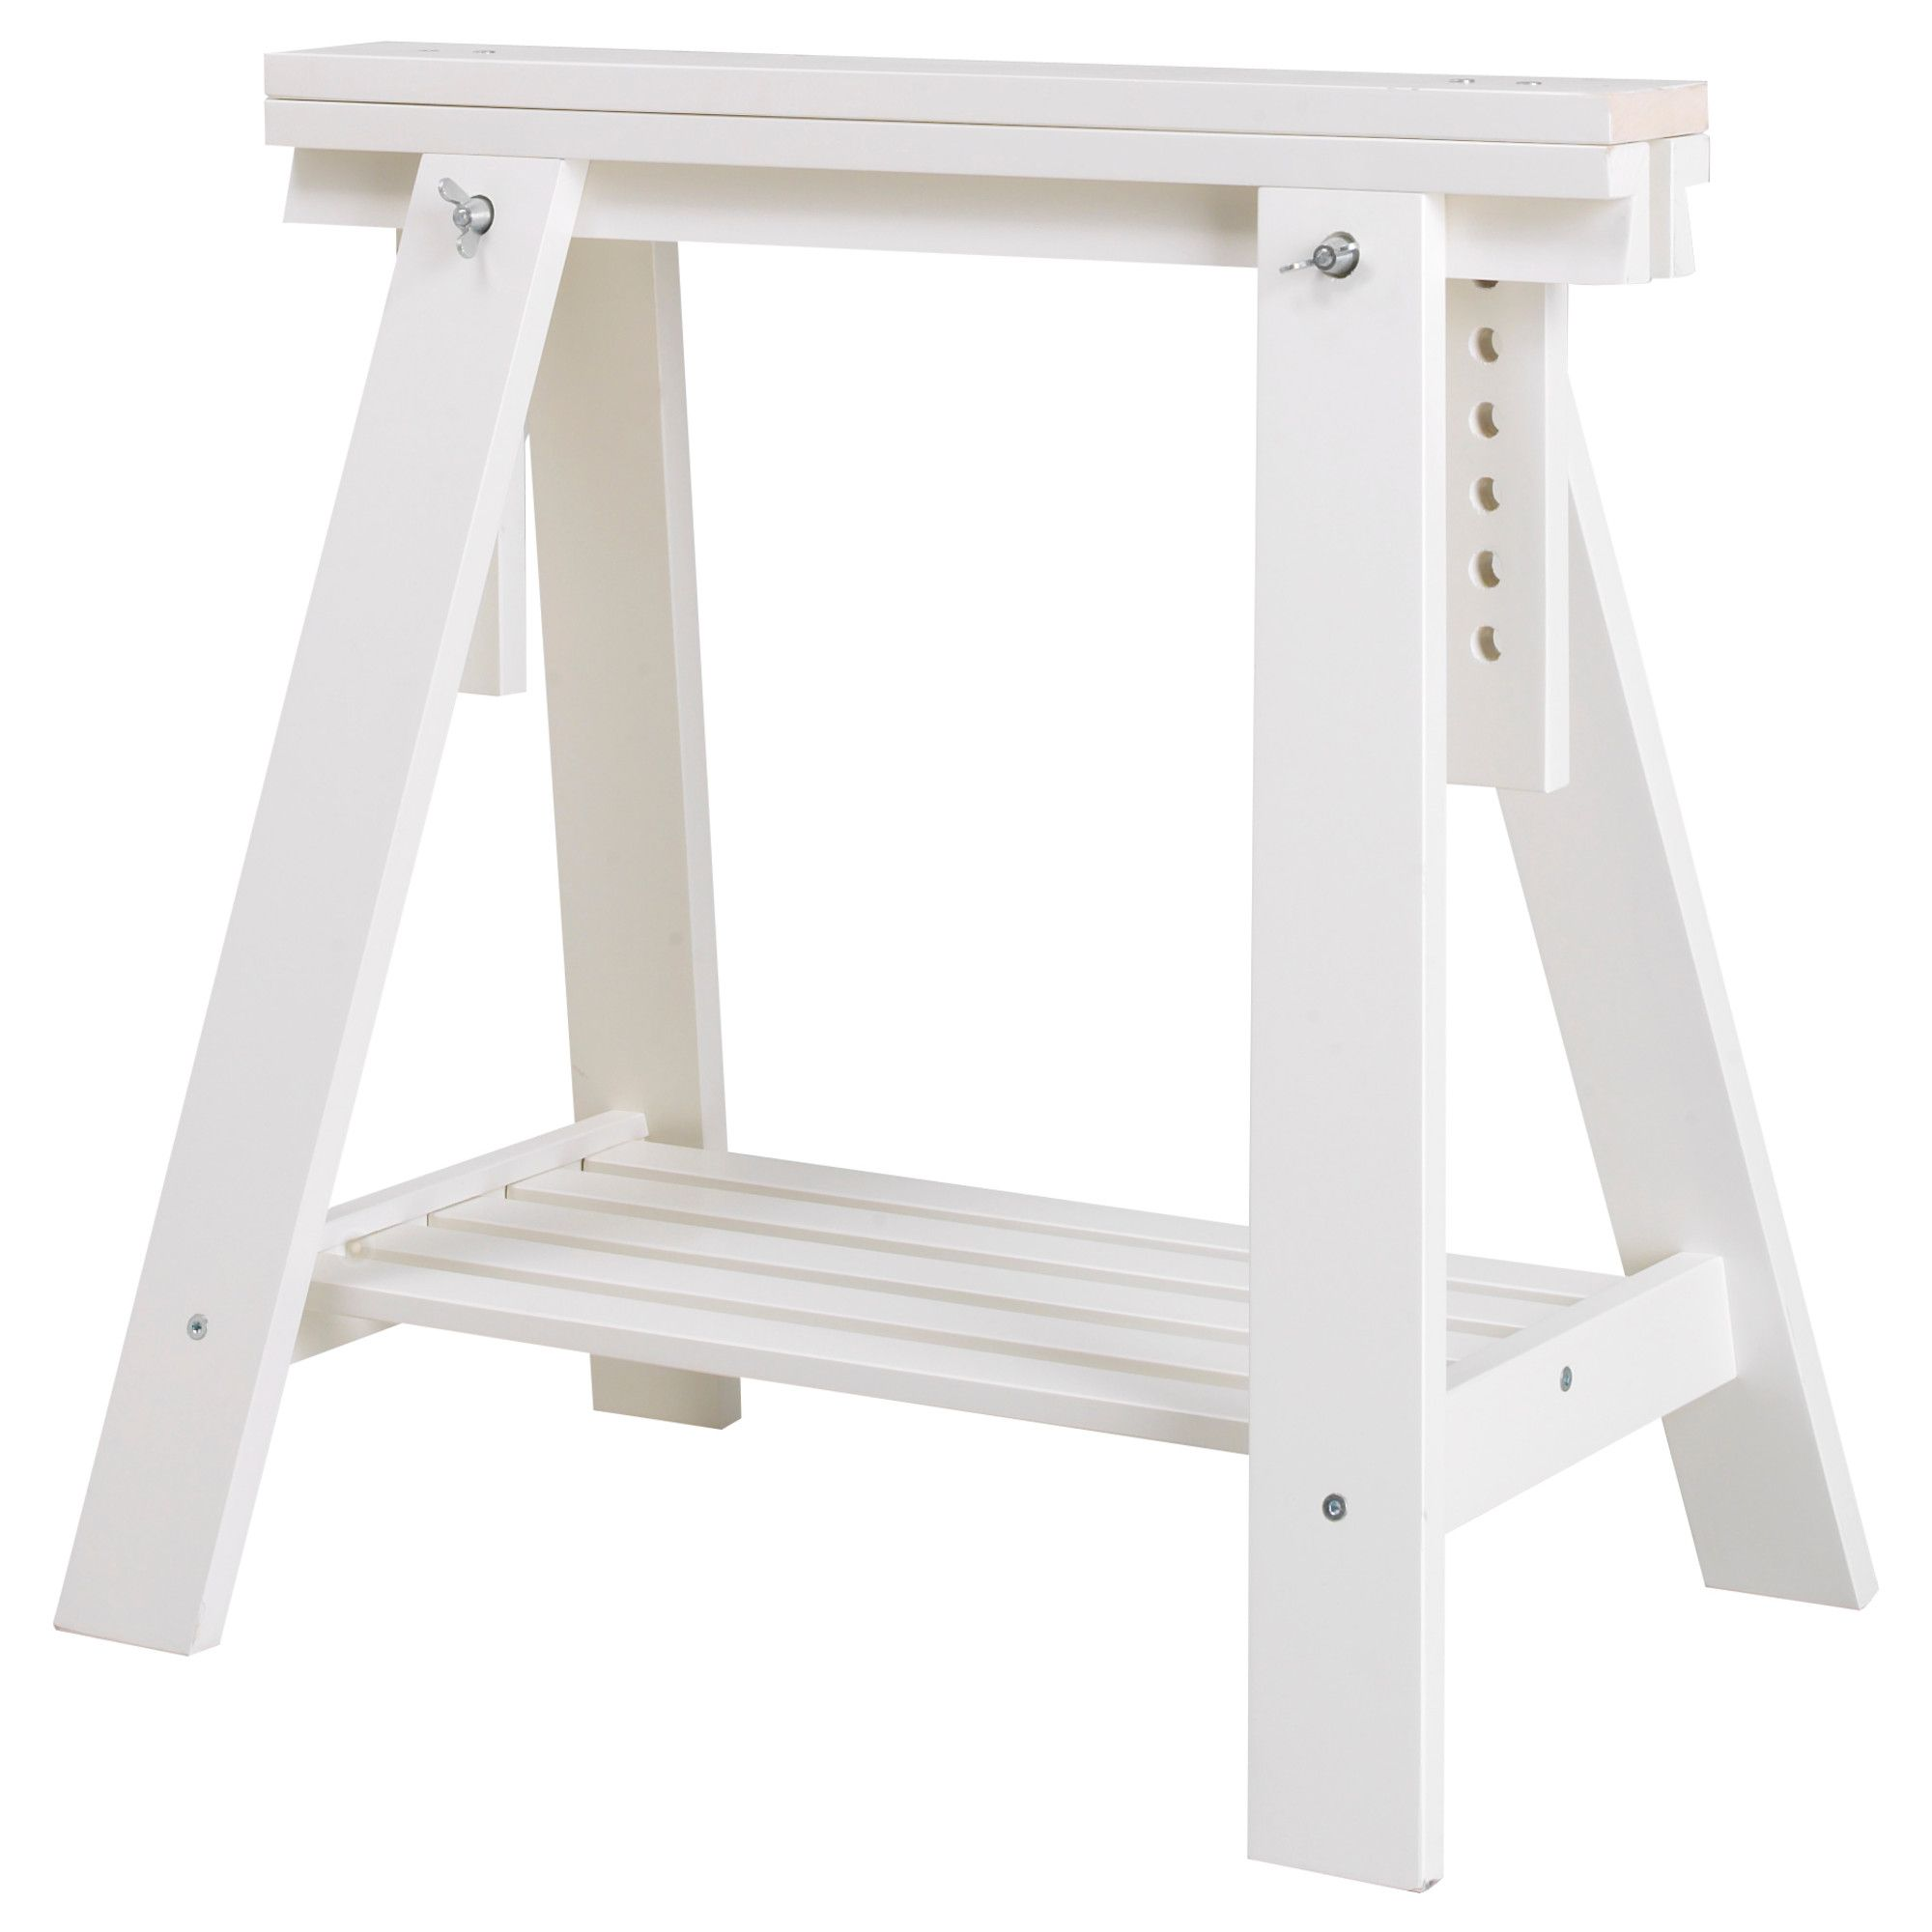 VIKA ARTUR Trestle With Shelf   White   IKEA Adjustable So It Can Go From A  Desk To A Cutting Table